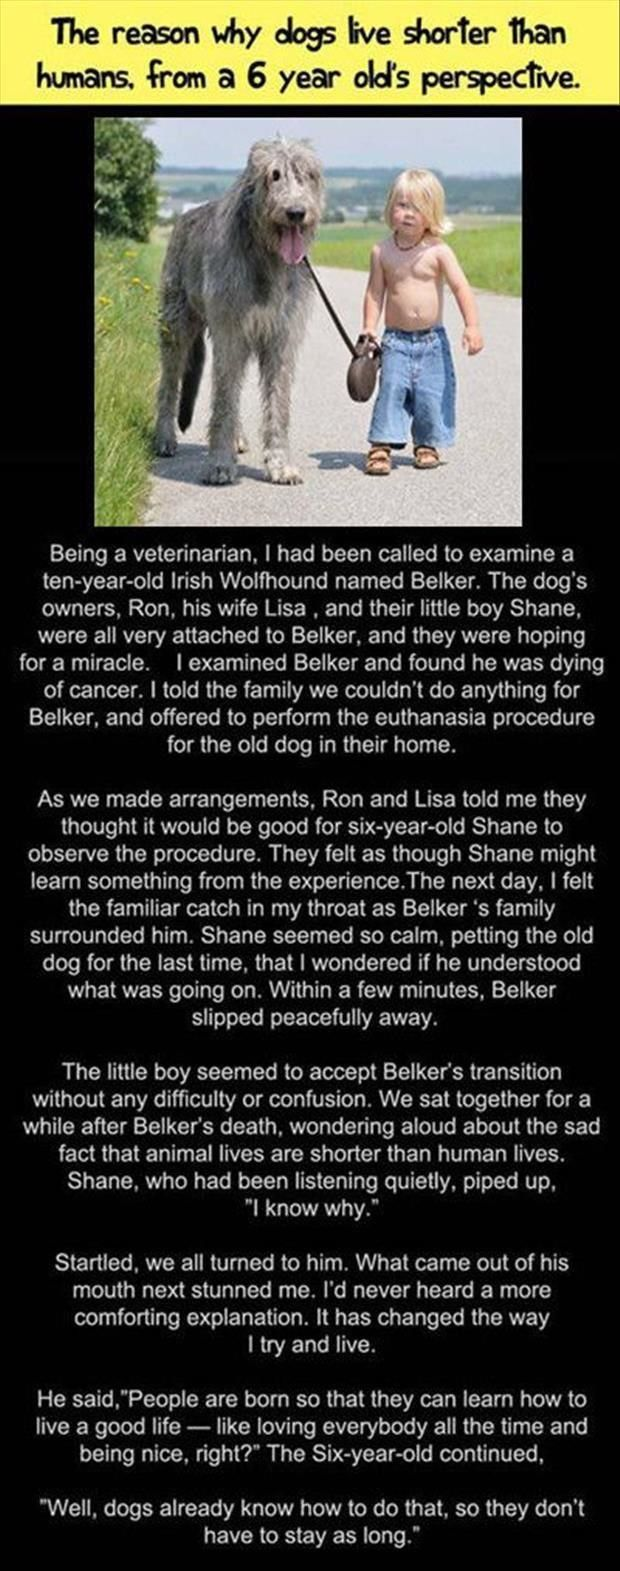 Faith In Humanity Restored - 21 Images